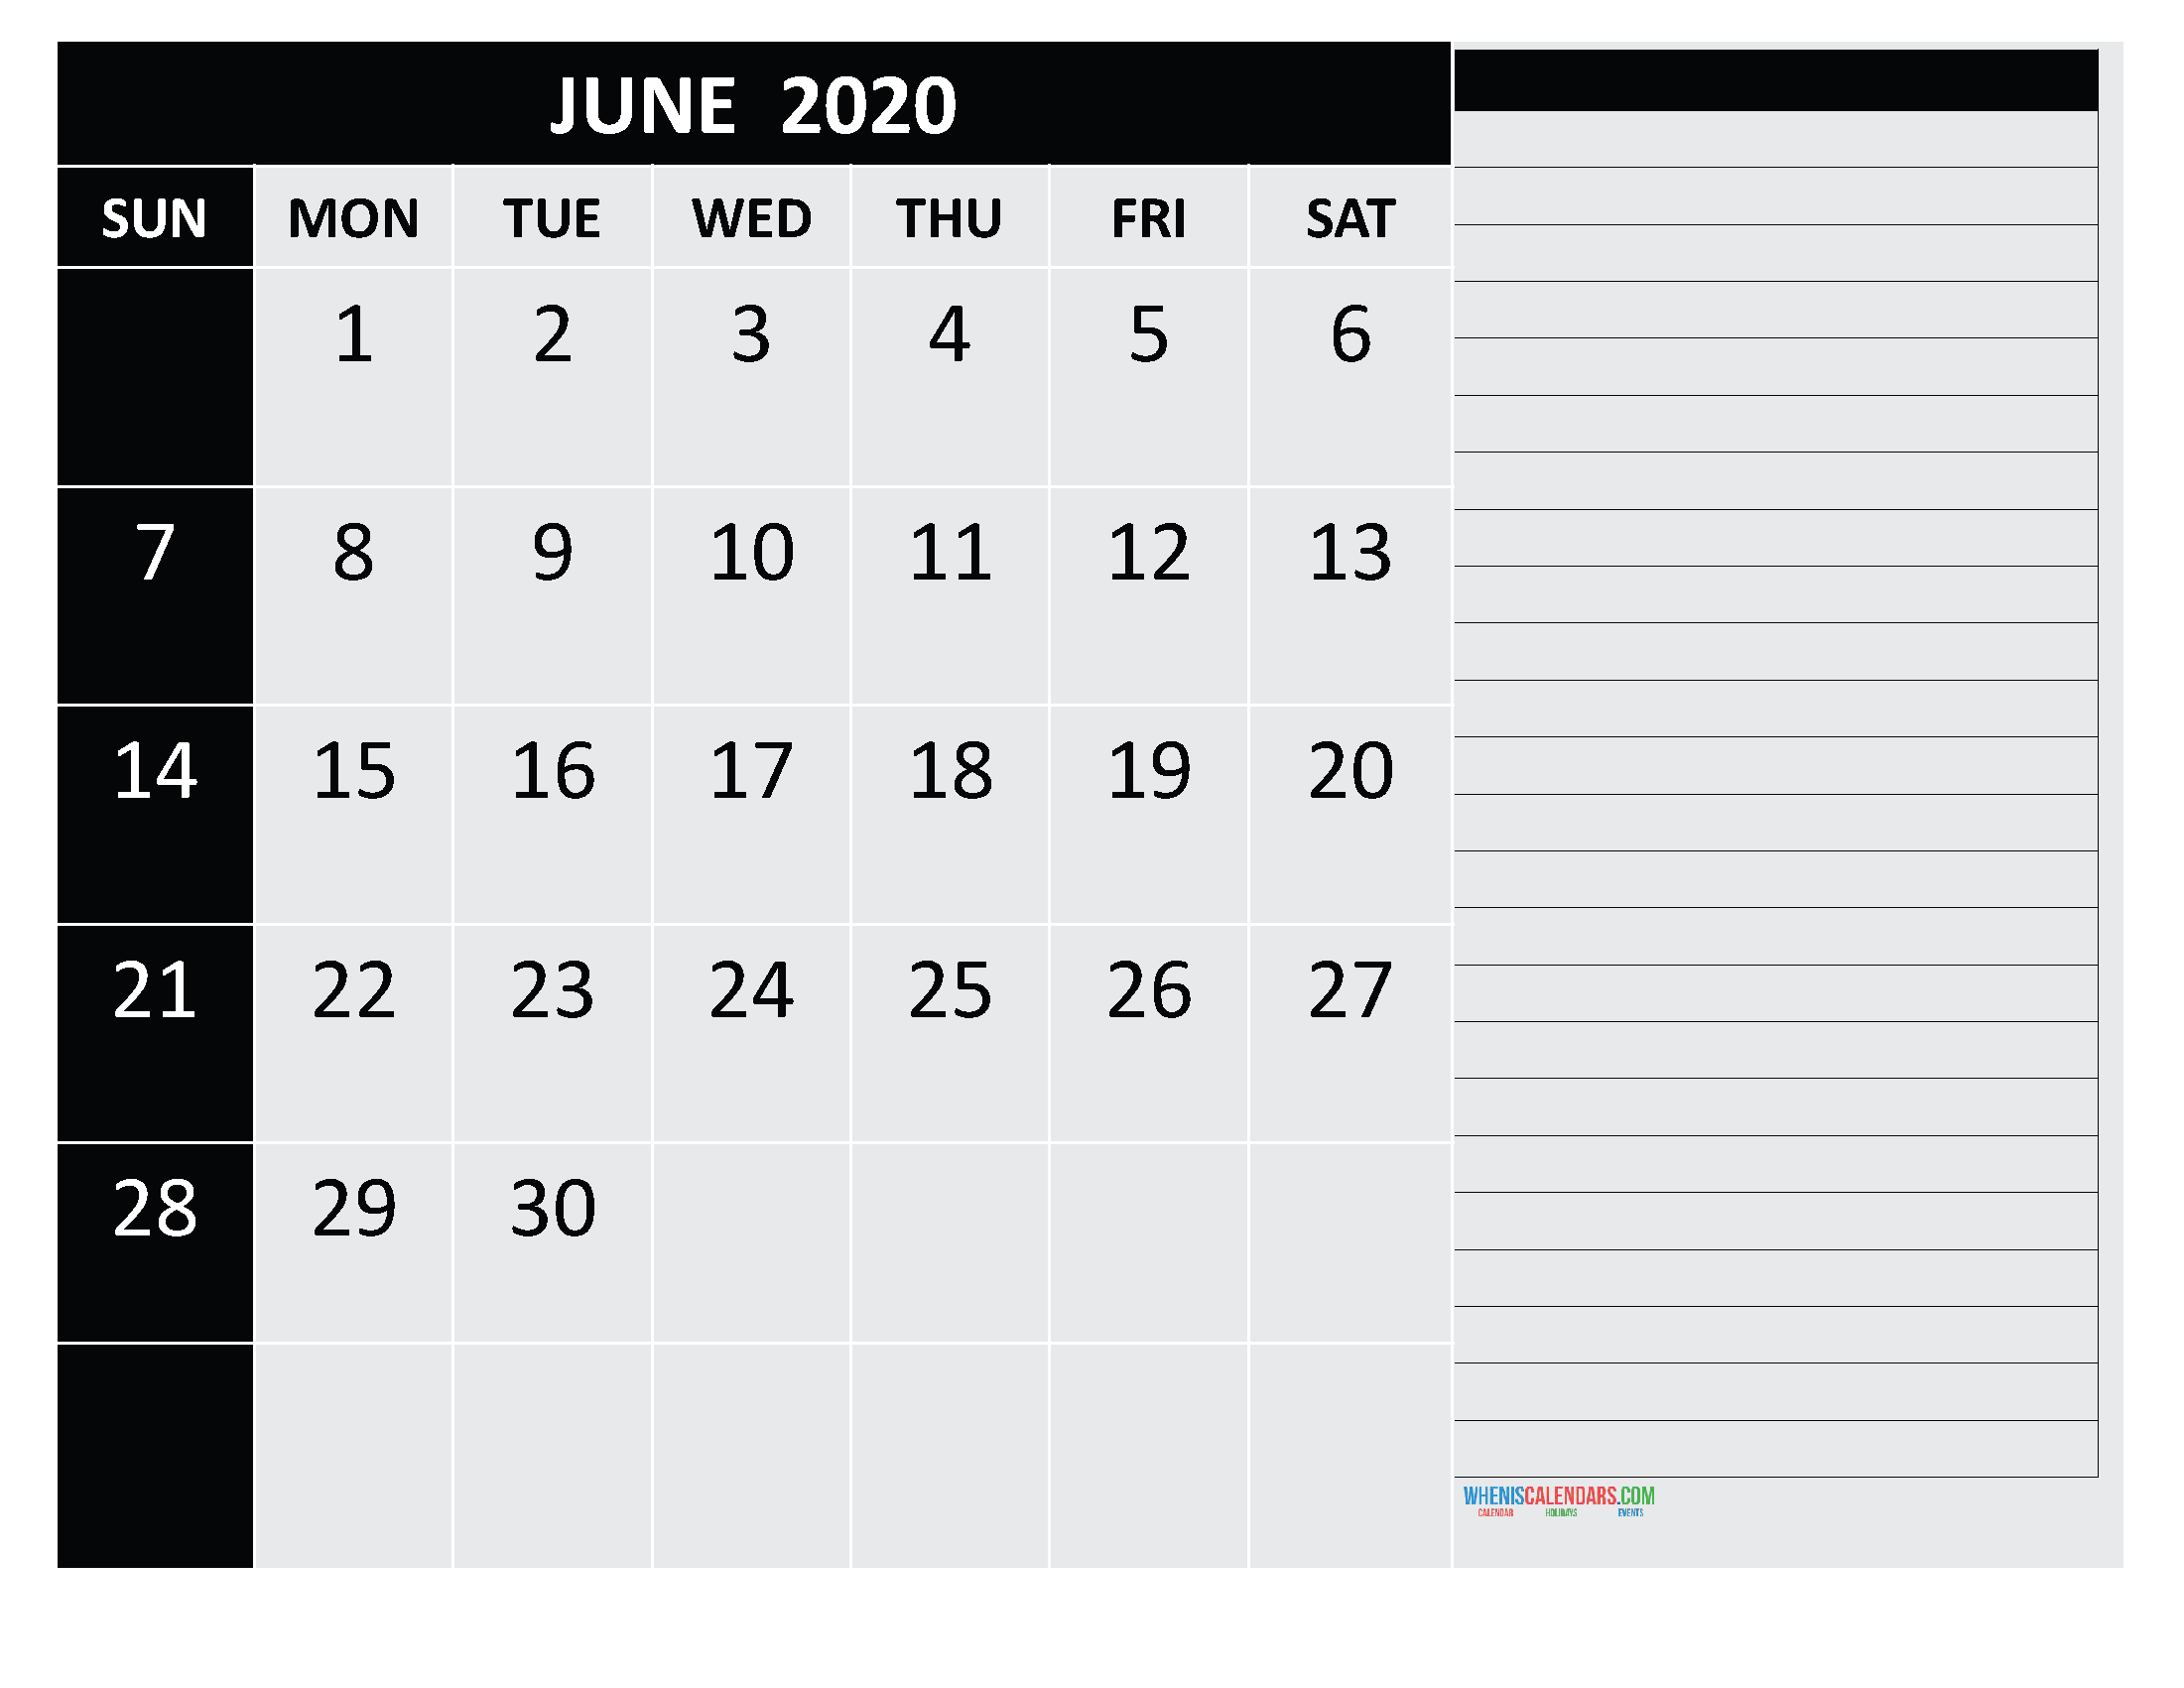 Free Monthly Printable Calendar 2020 June with Holidays